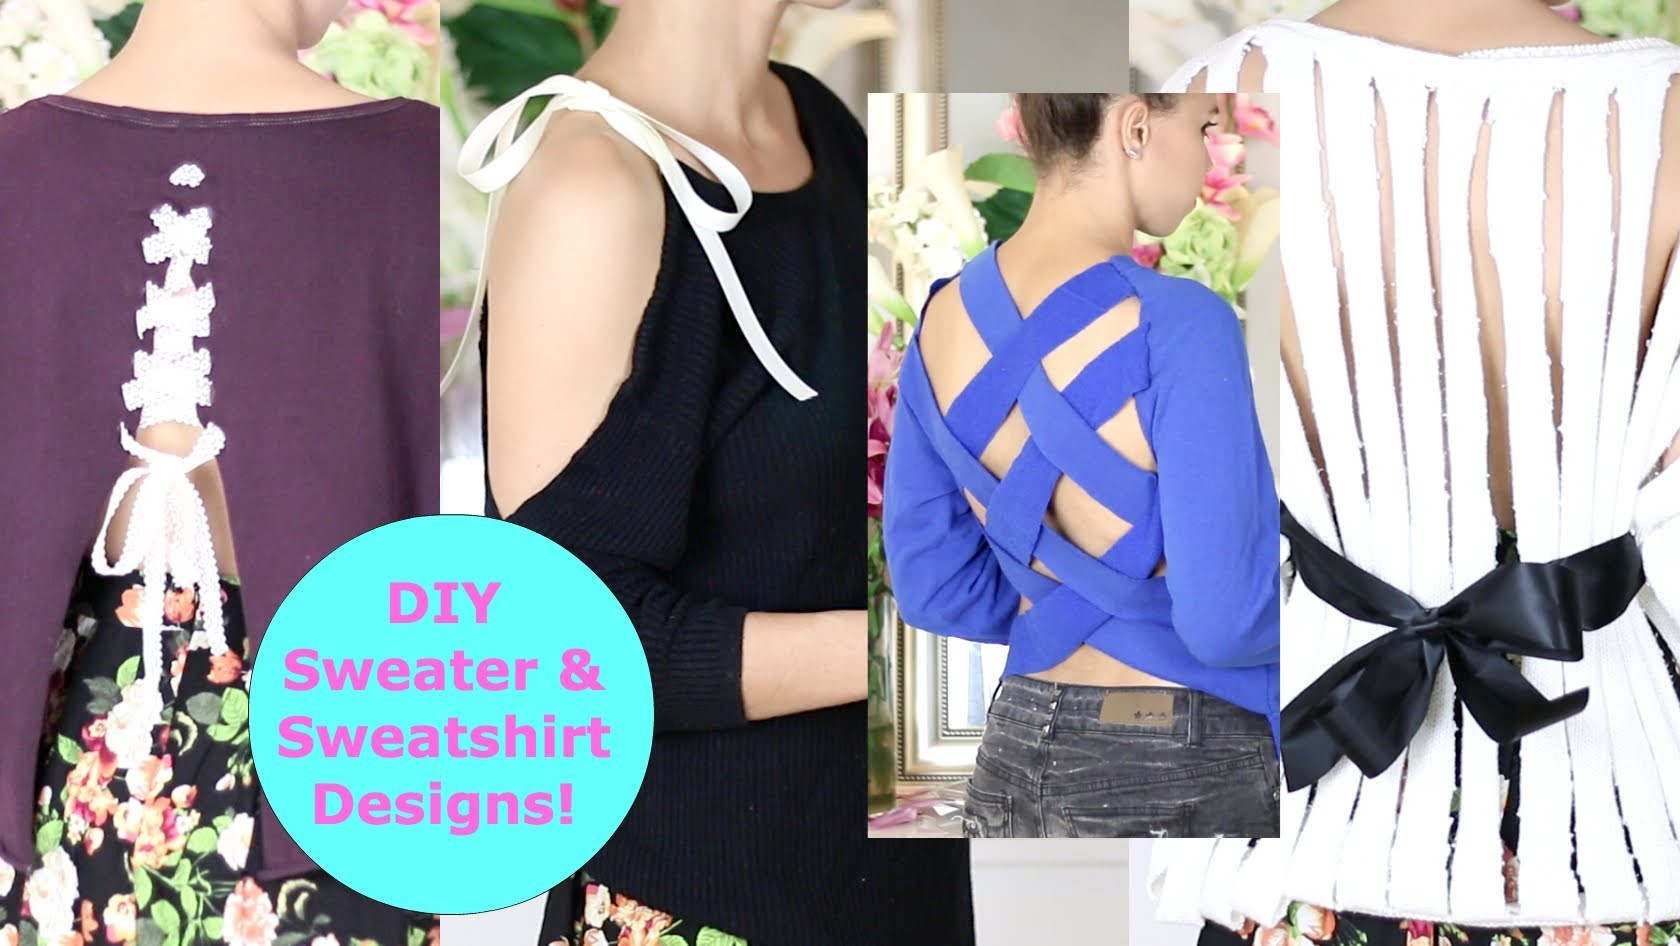 DIY Sweater Design Cutting Ideas! DIY Sweater. Sweatshirt Reconstruction